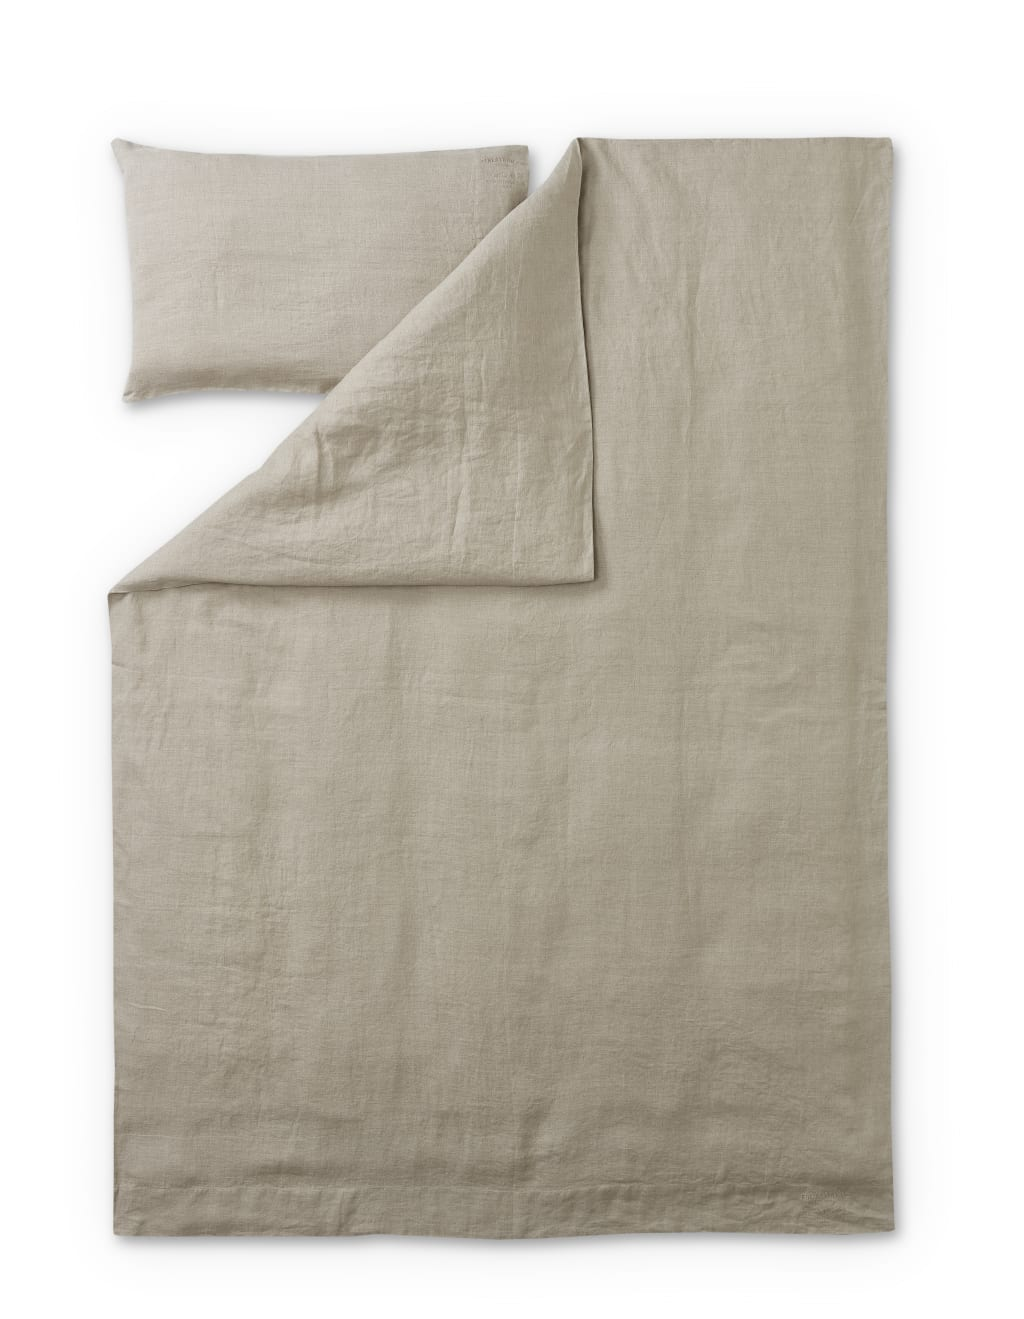 Jesus Linen Duvet Cover Set